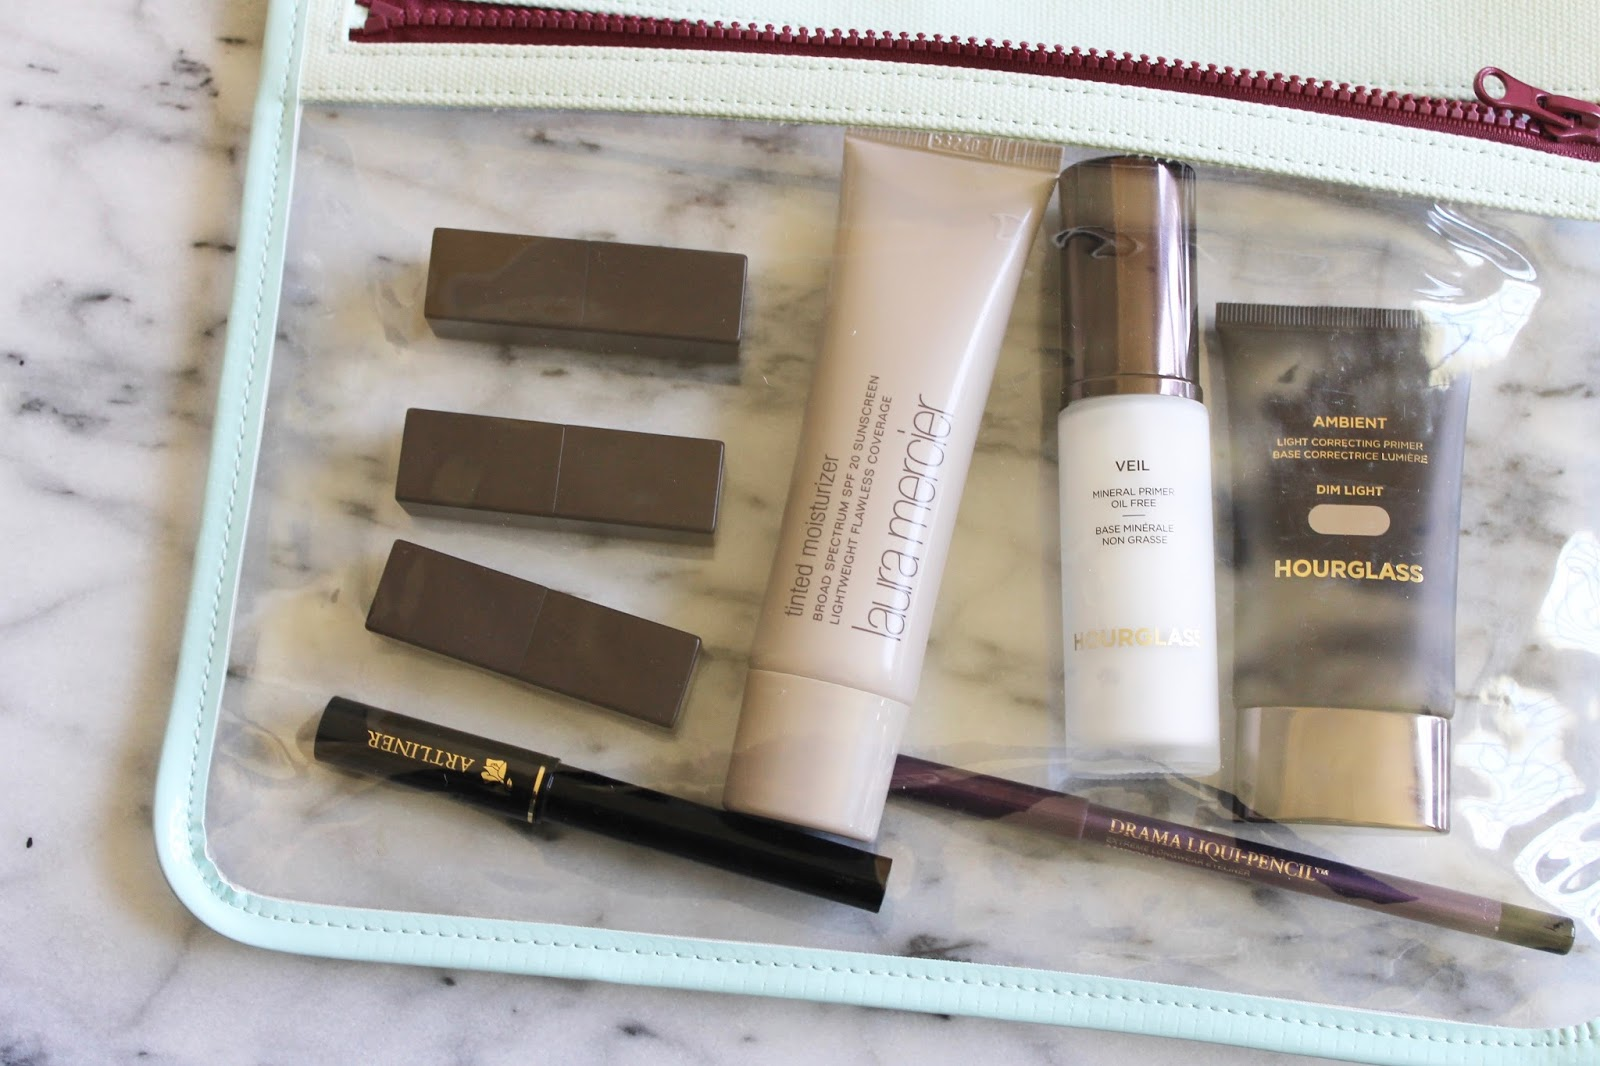 5 TIPS TO MIX UP YOUR MAKEUP BAG FOR WARMER WEATHER